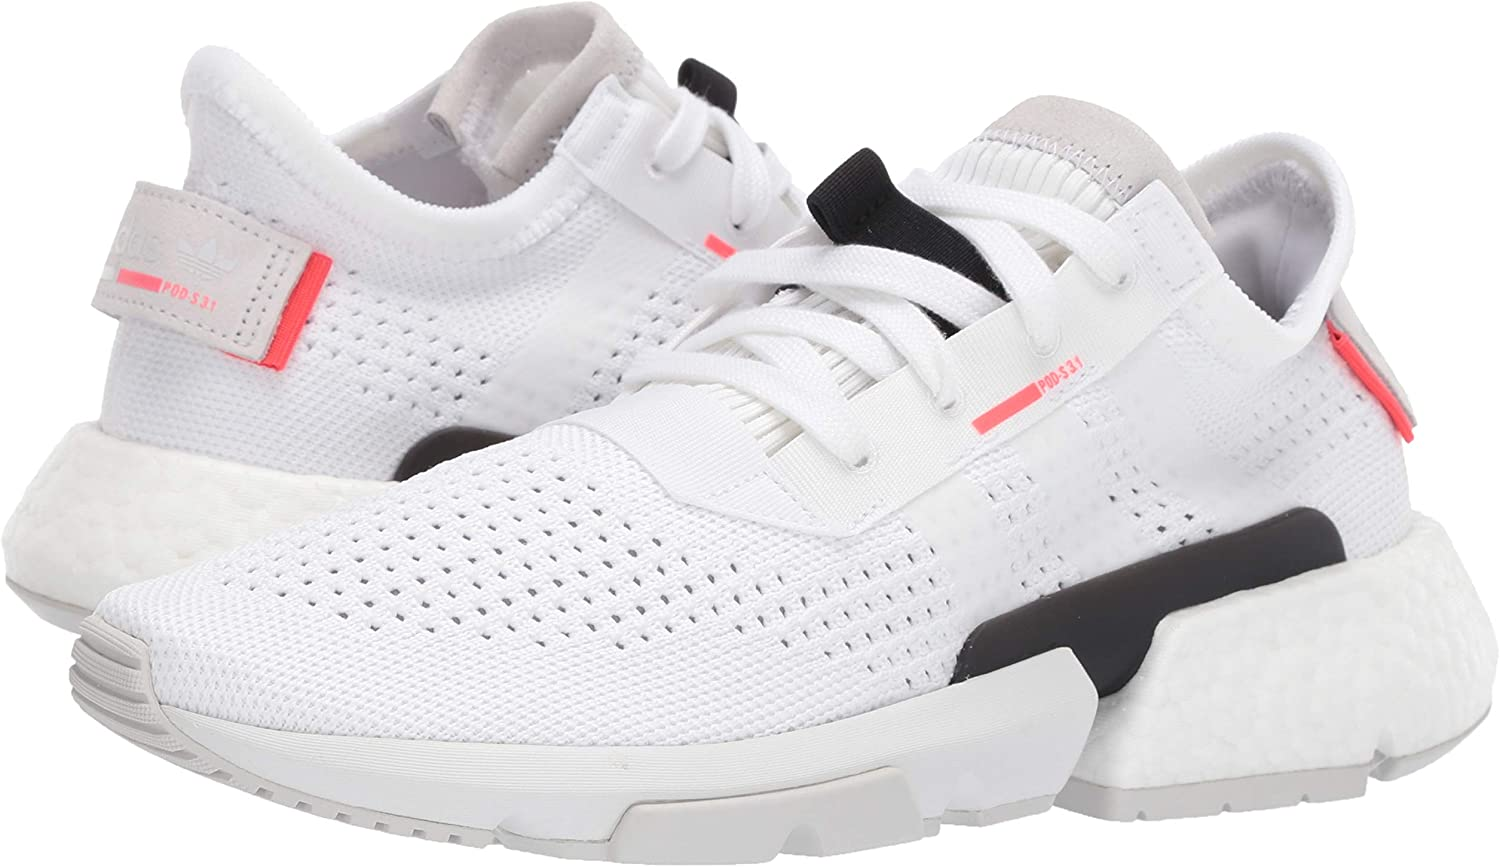 adidas Womens Pod-S3.1 Casual Sneakers,